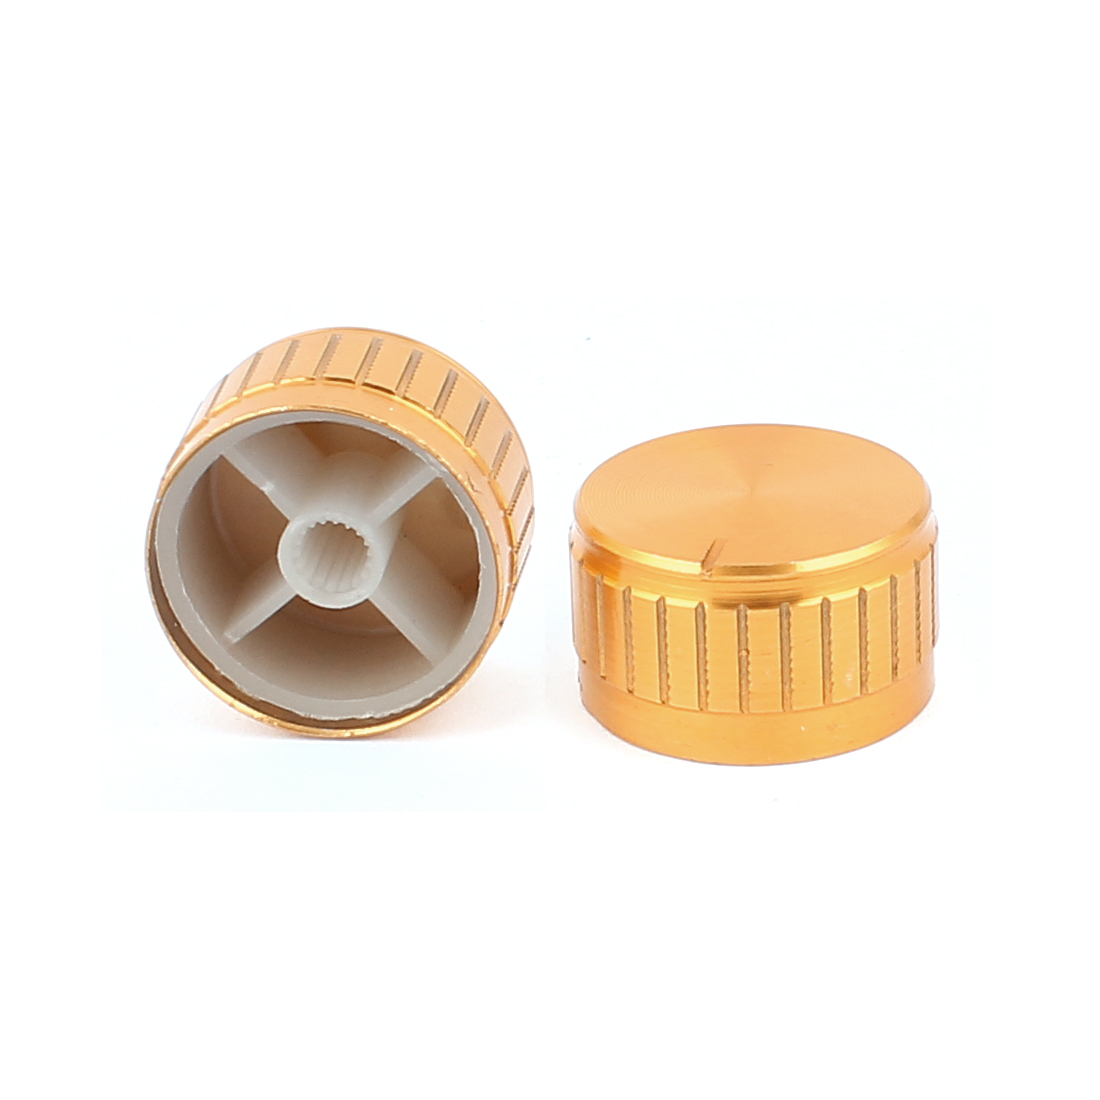 2 Pcs 26mm x 6mm Potentiometer Control Switch Volume Cap Aluminium Alloy Knurled Button Gold Tone